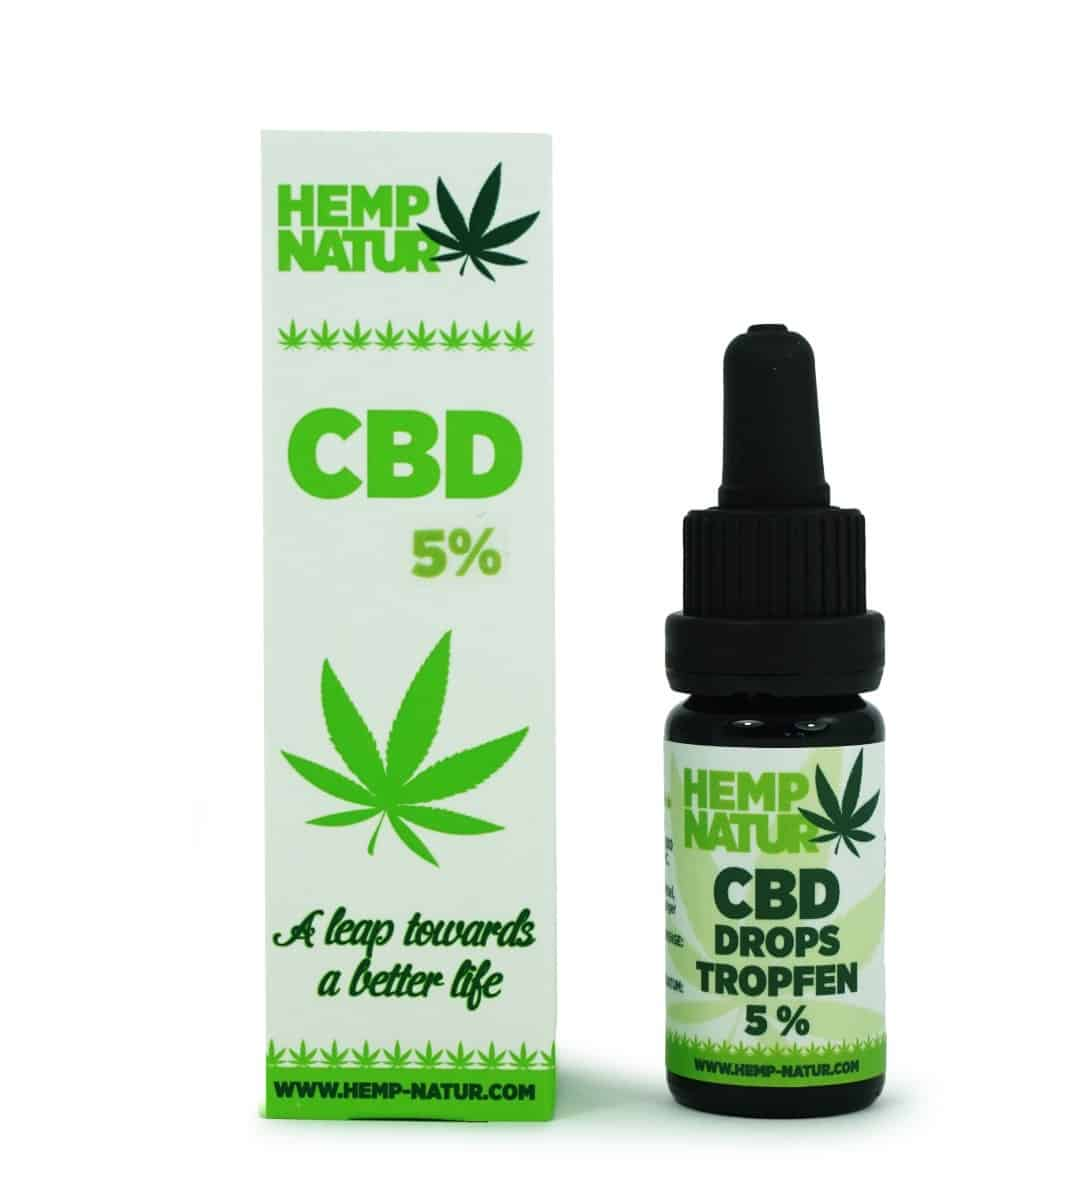 Hemp Natur Coupon Code Online Discount Save On Cannabis